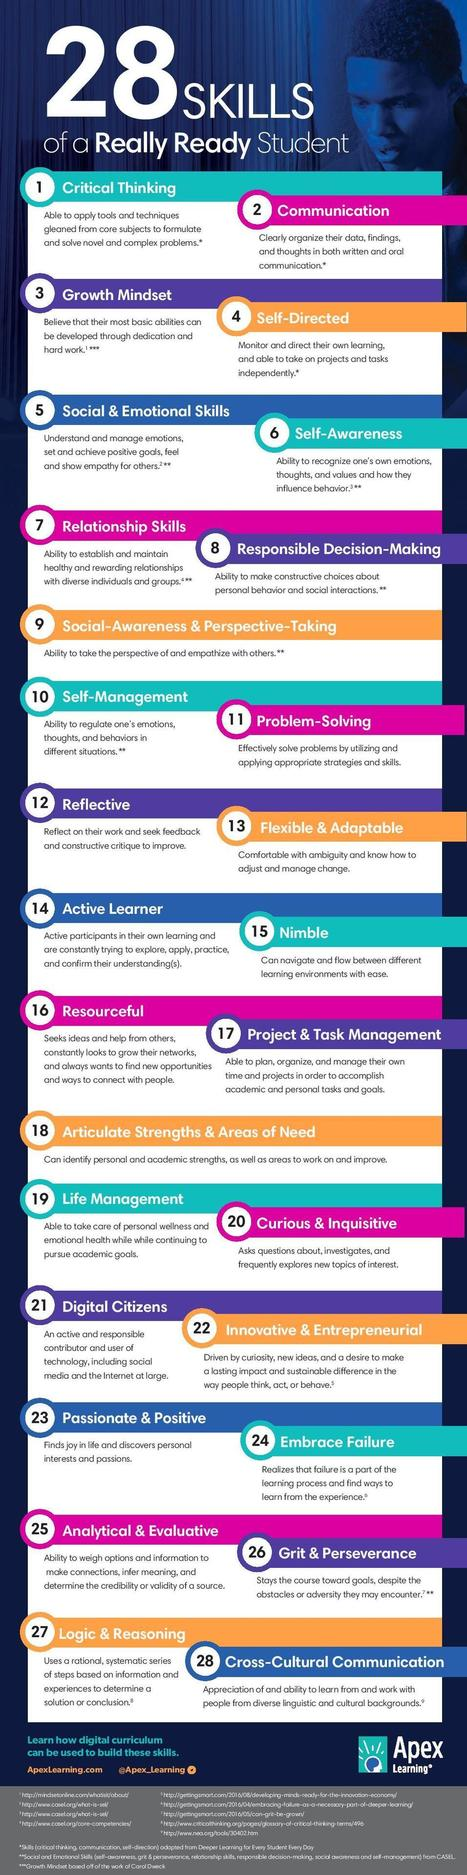 28 Skills of a Really Ready Student Infographic - e-Learning Infographics   Tablets na educação   Scoop.it